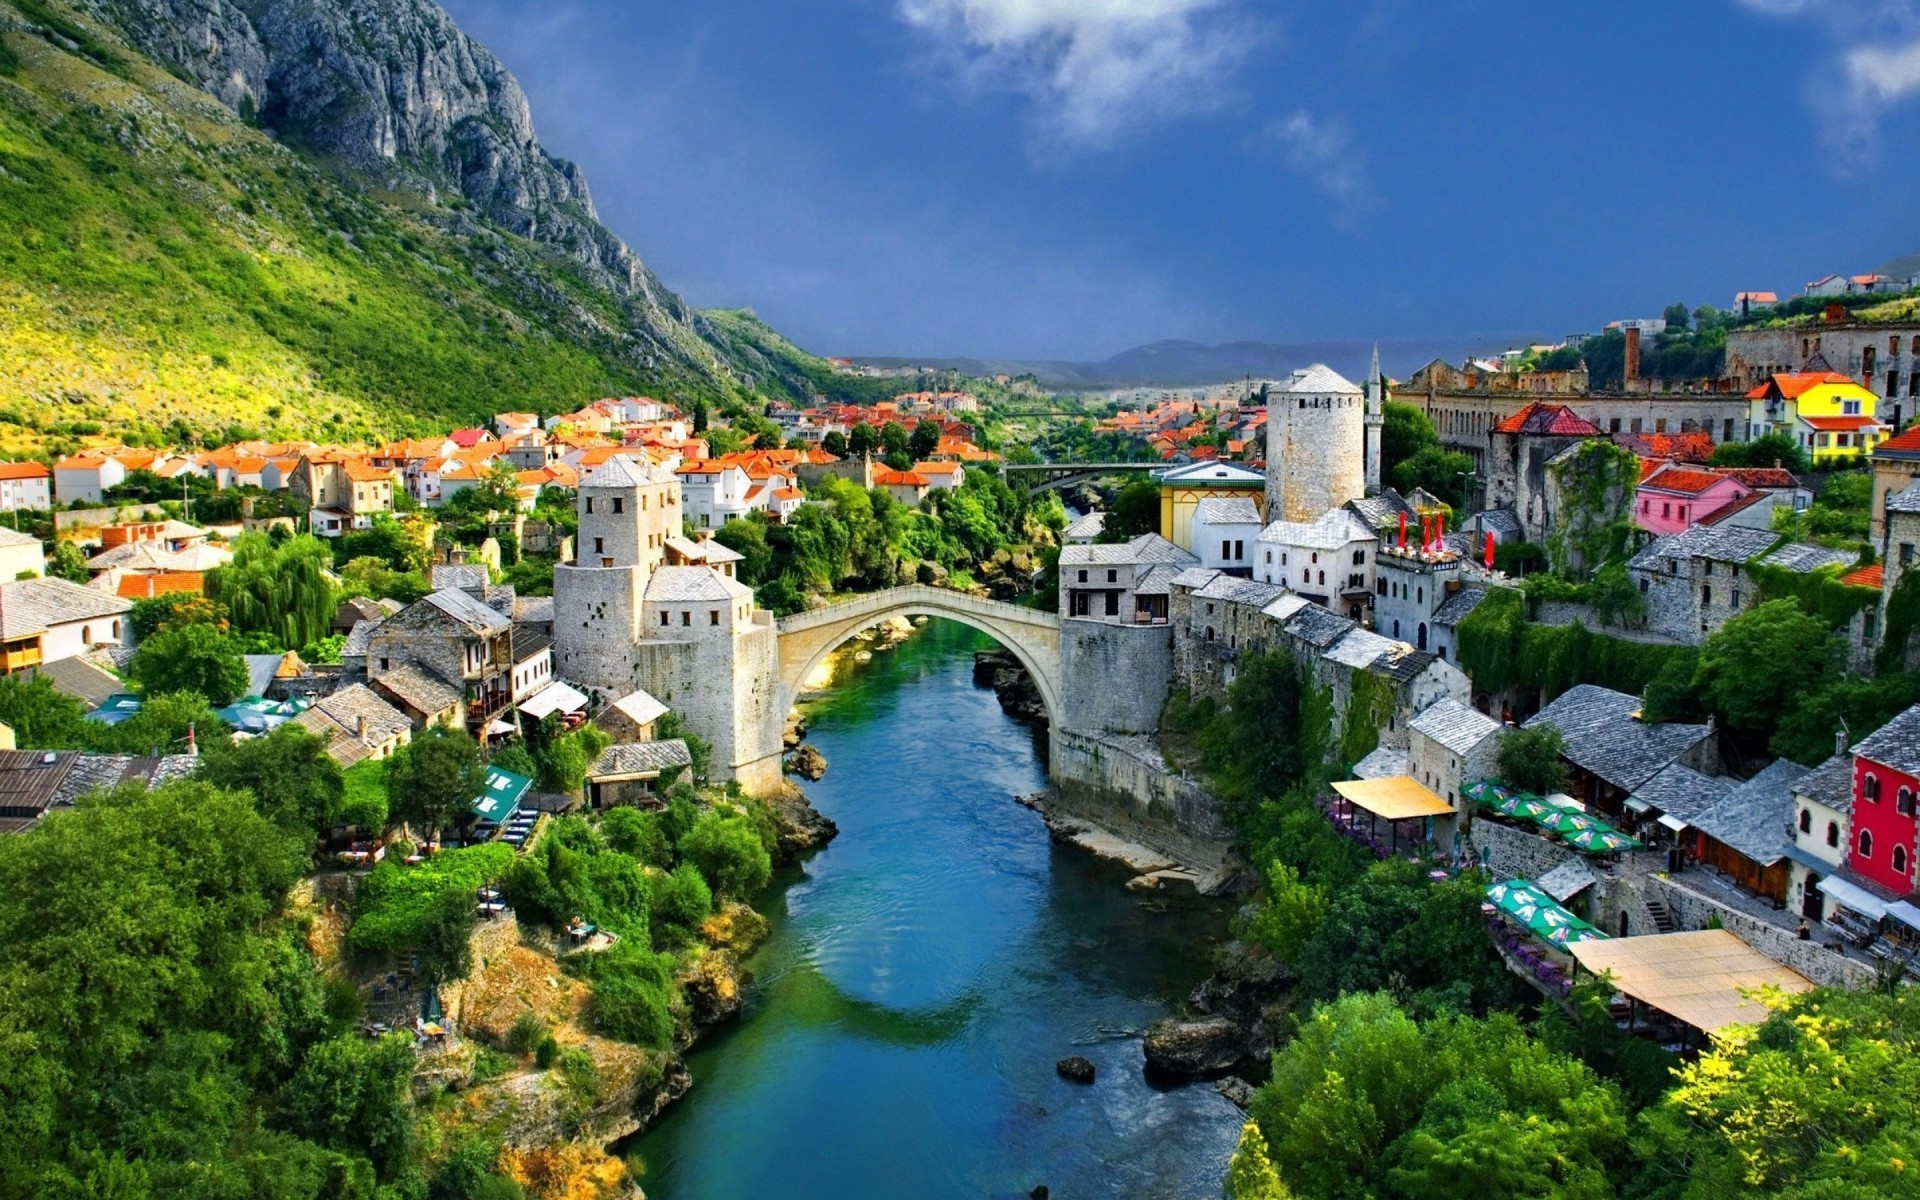 Best 46 Mostar Wallpaper on HipWallpaper Mostar Wallpaper 1920x1200